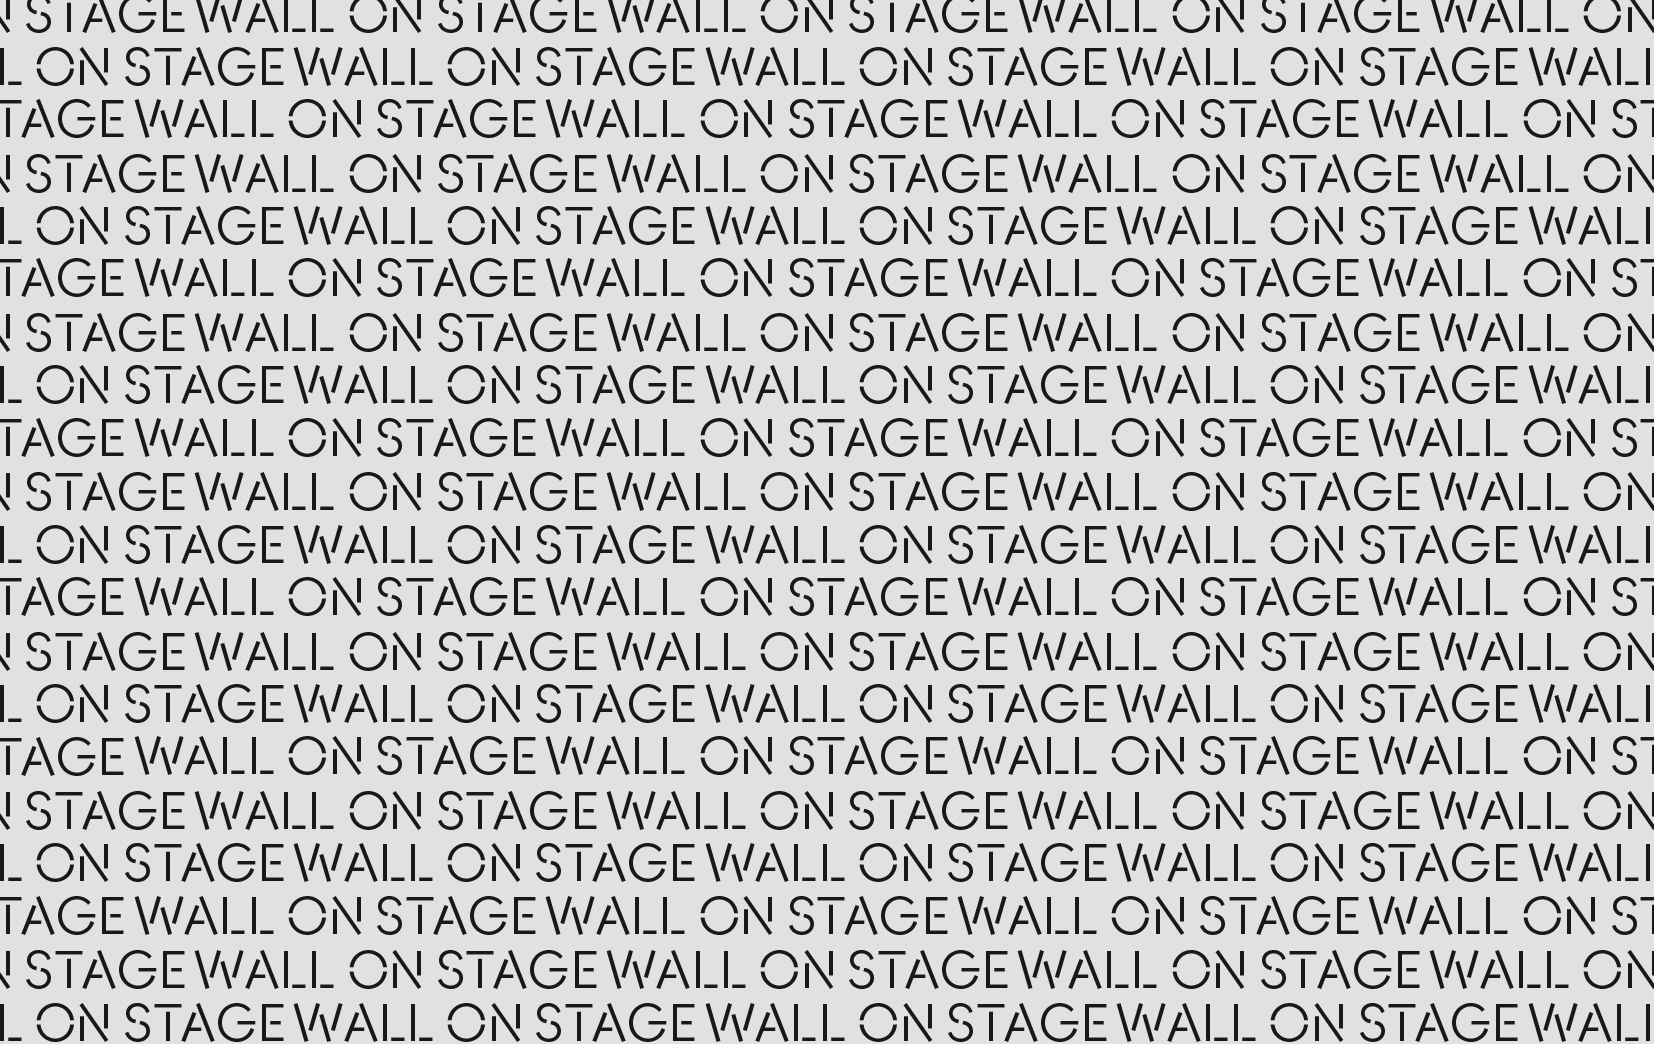 all-over wall on stage